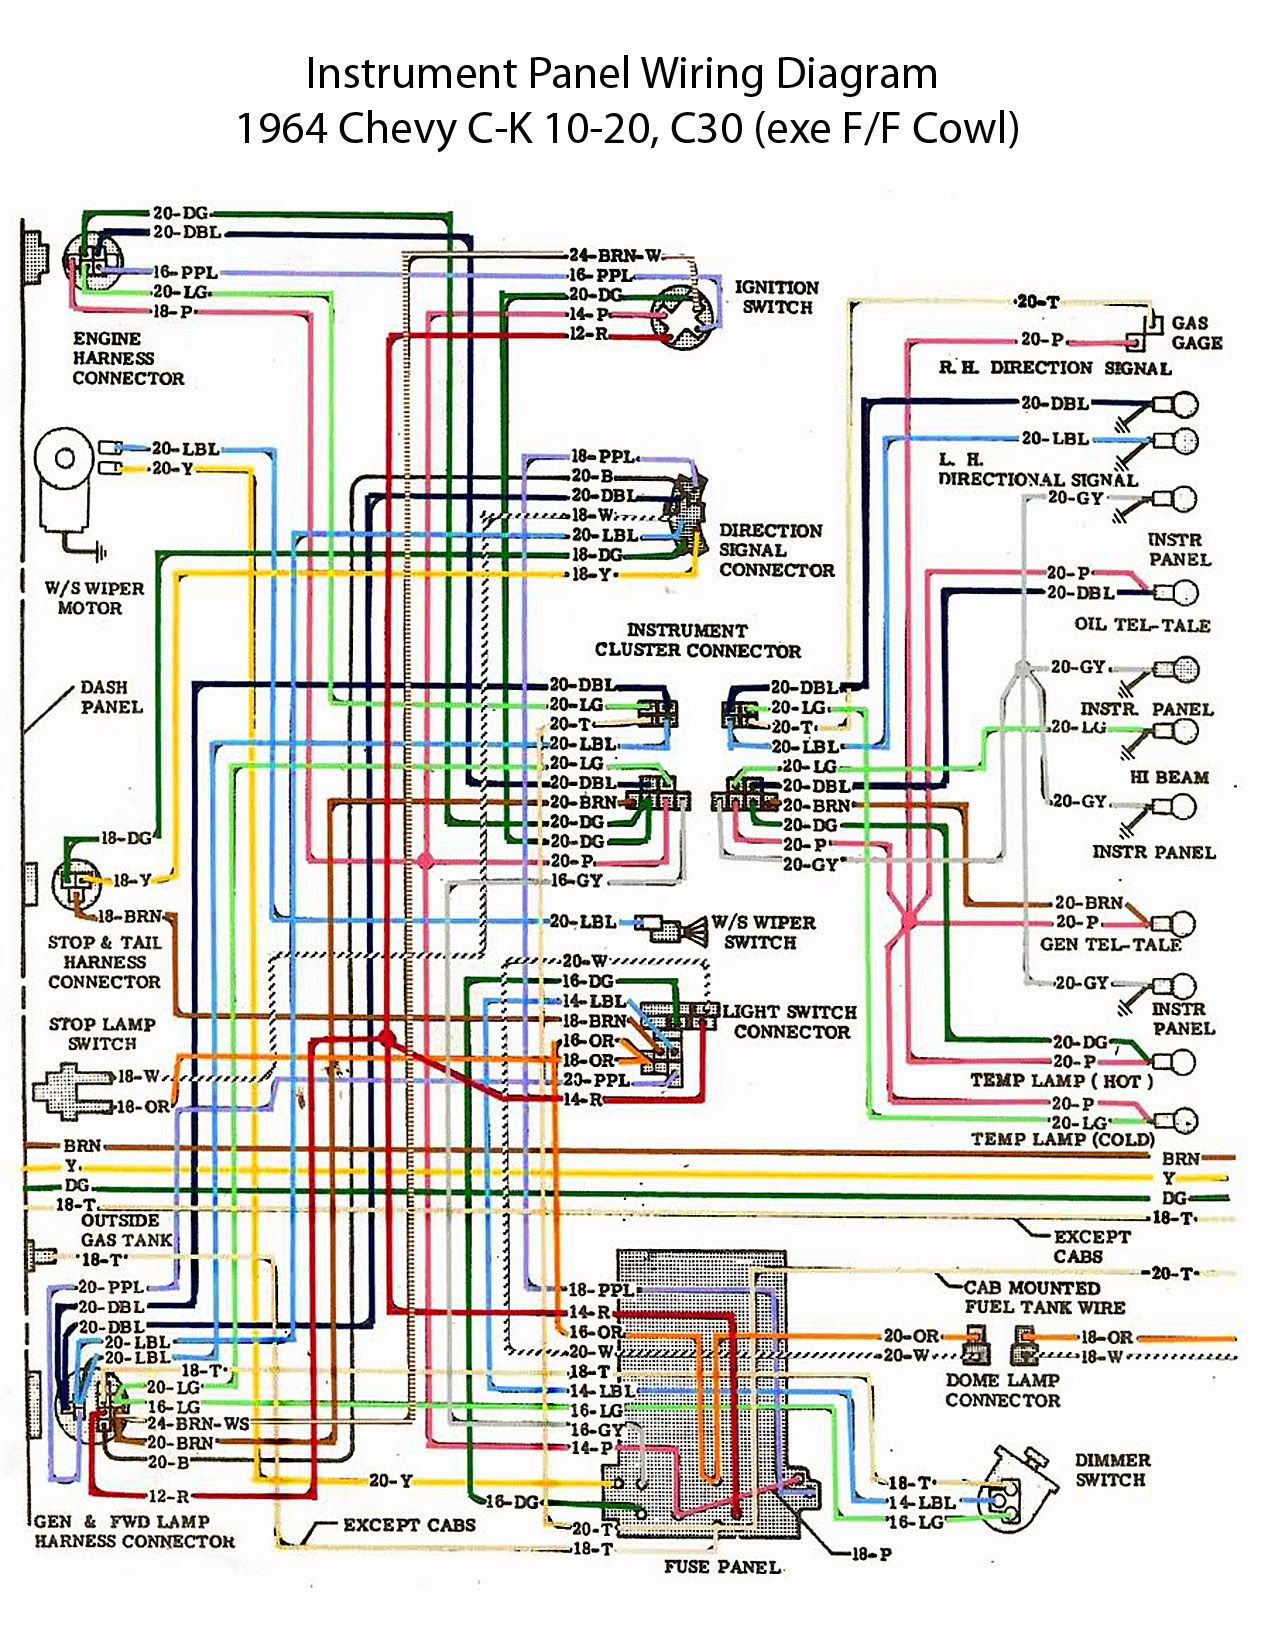 29f907bf017db832106977dbff5b5b31 64 chevy c10 wiring diagram chevy truck wiring diagram 64  at soozxer.org